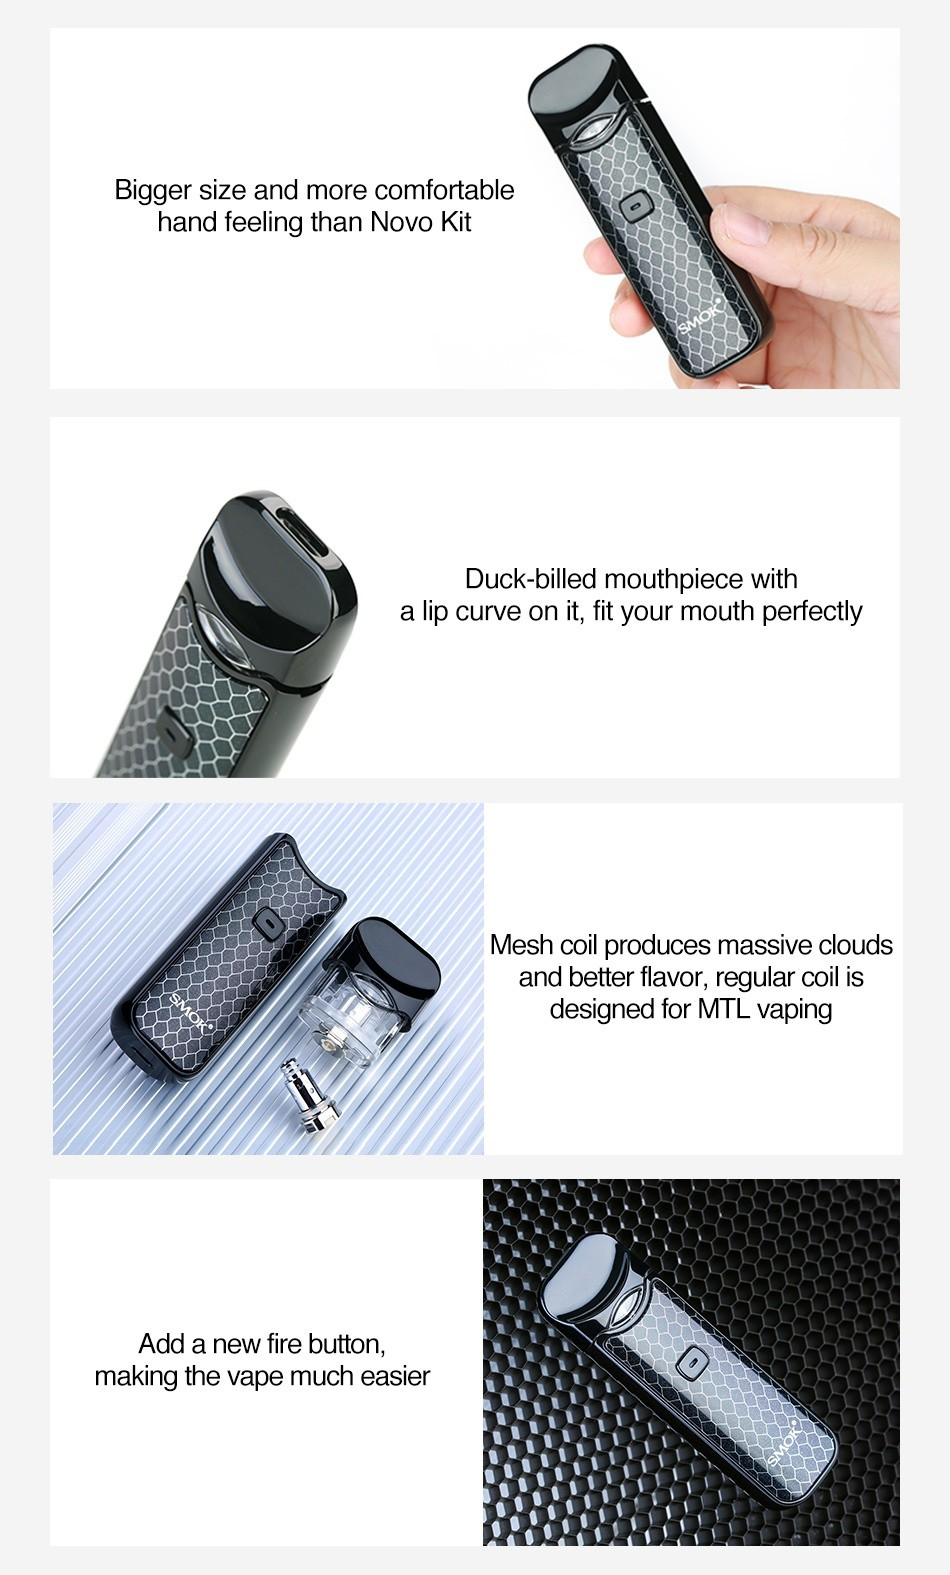 SMOK Nord Pod Starter Kit 1100mAh Bigger size and more comfortable hand feeling than Novo Kit Duck billed mouthpiece with a lip curve on it  fit your mouth perfectly Mesh coil produces massive cloud and better flavor  regular Coll IS designed for MTL vaping Add a new fire button making the vape much easier